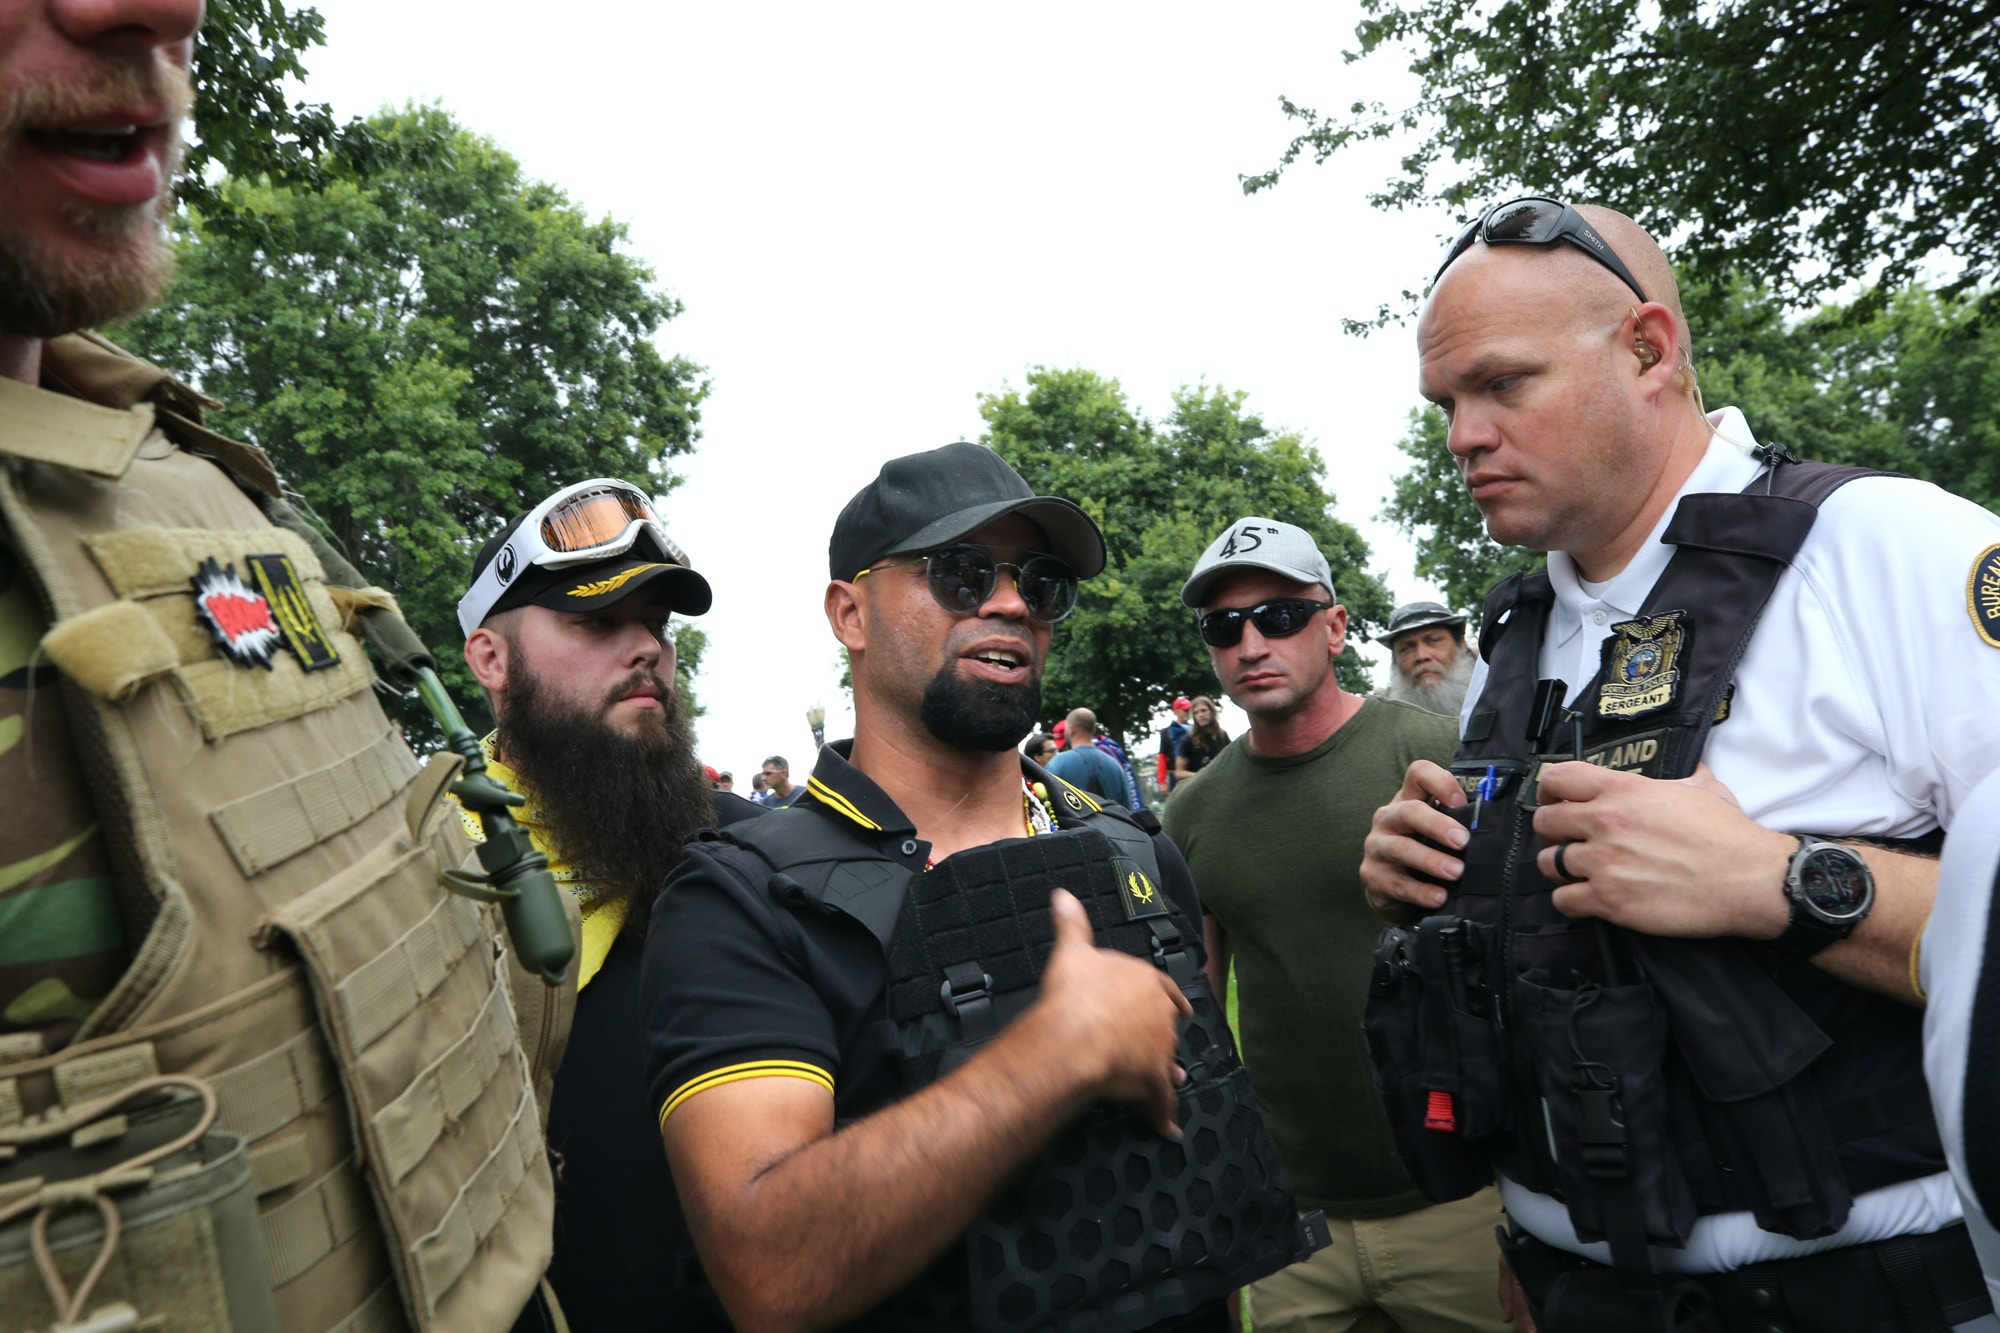 Enrique Tarrio (L), chairman of the alt-right group Proud Boys, speaks with a police officer during the End Domestic Terrorism rally at Tom McCall Waterfront Park on August 17, 2019 in Portland, Oregon.